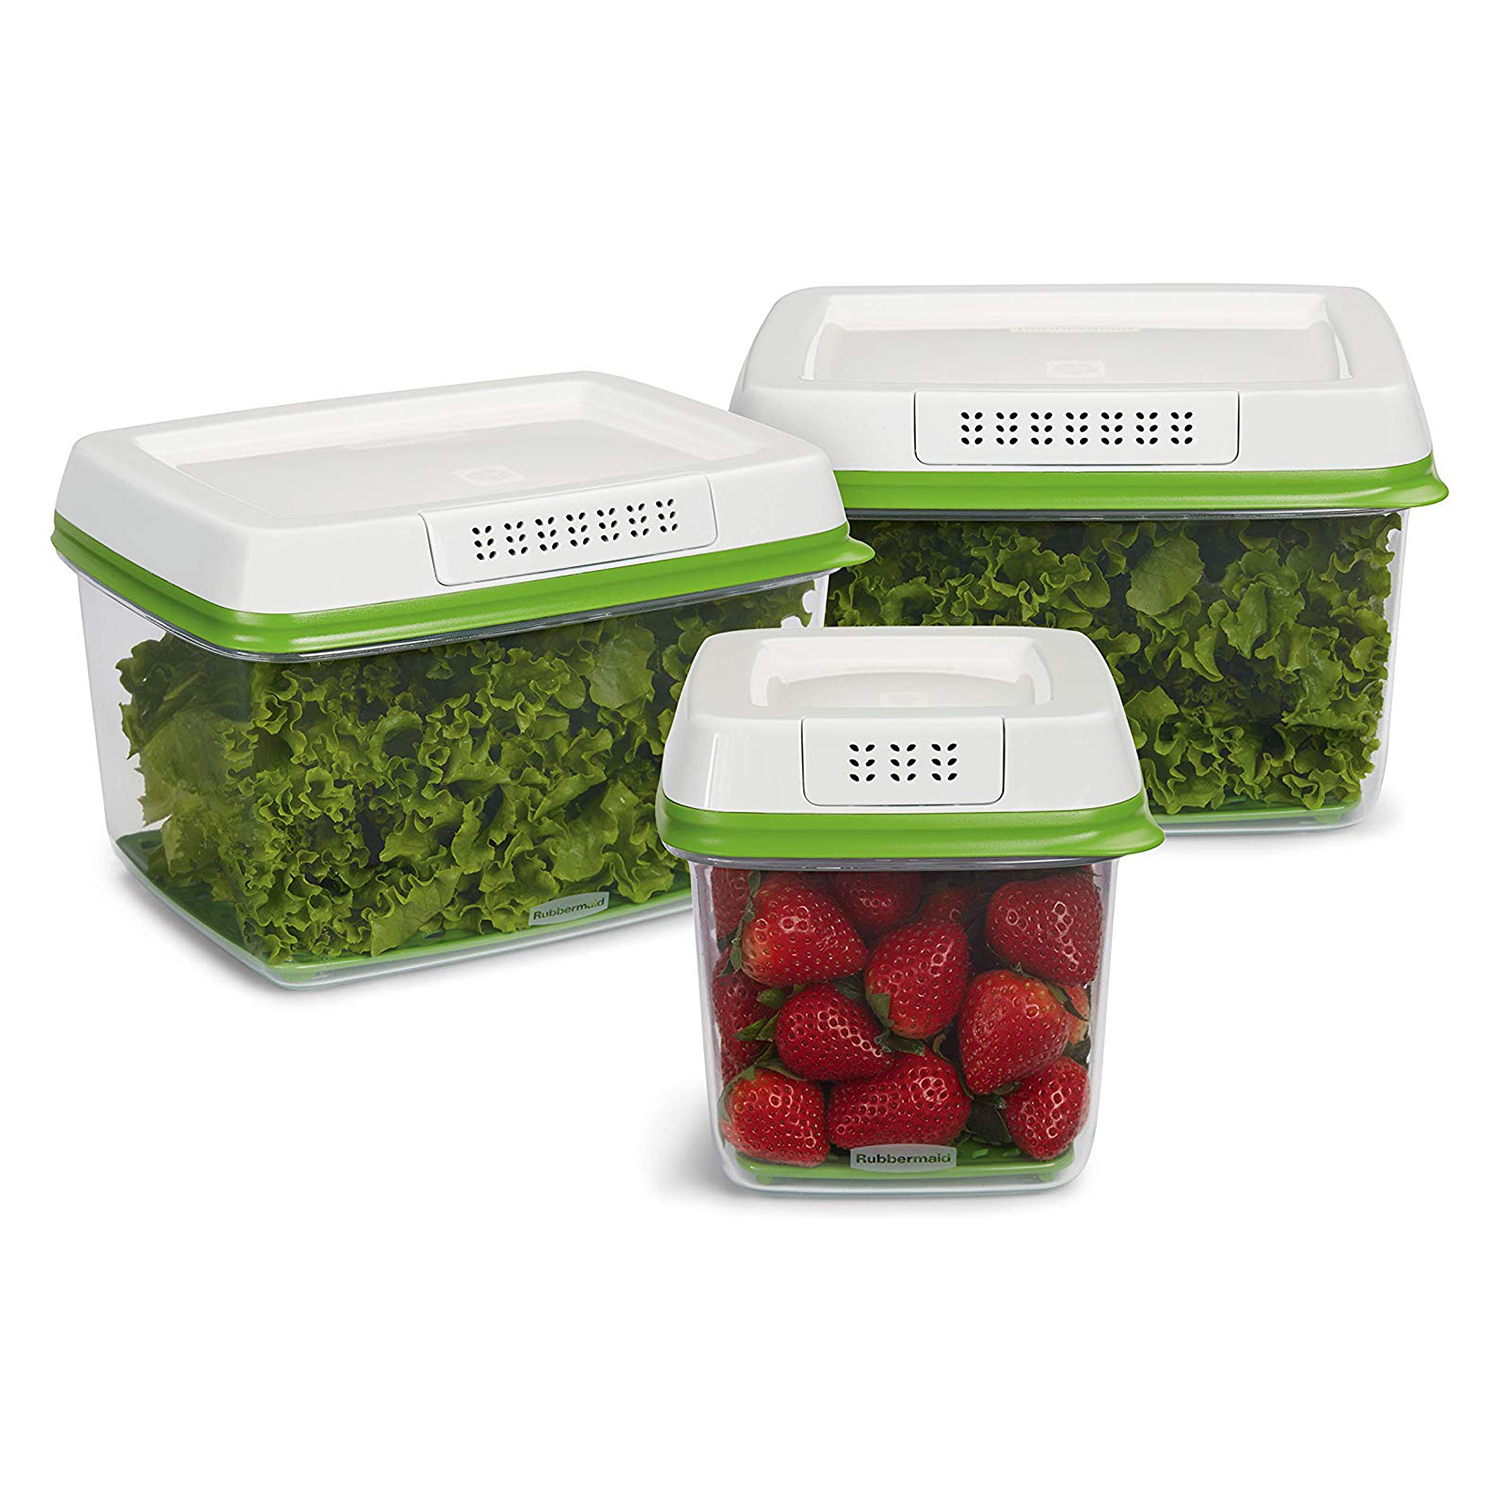 Rubbermaid FreshWorks Produce Saver Food Storage Containers Three-Piece Set